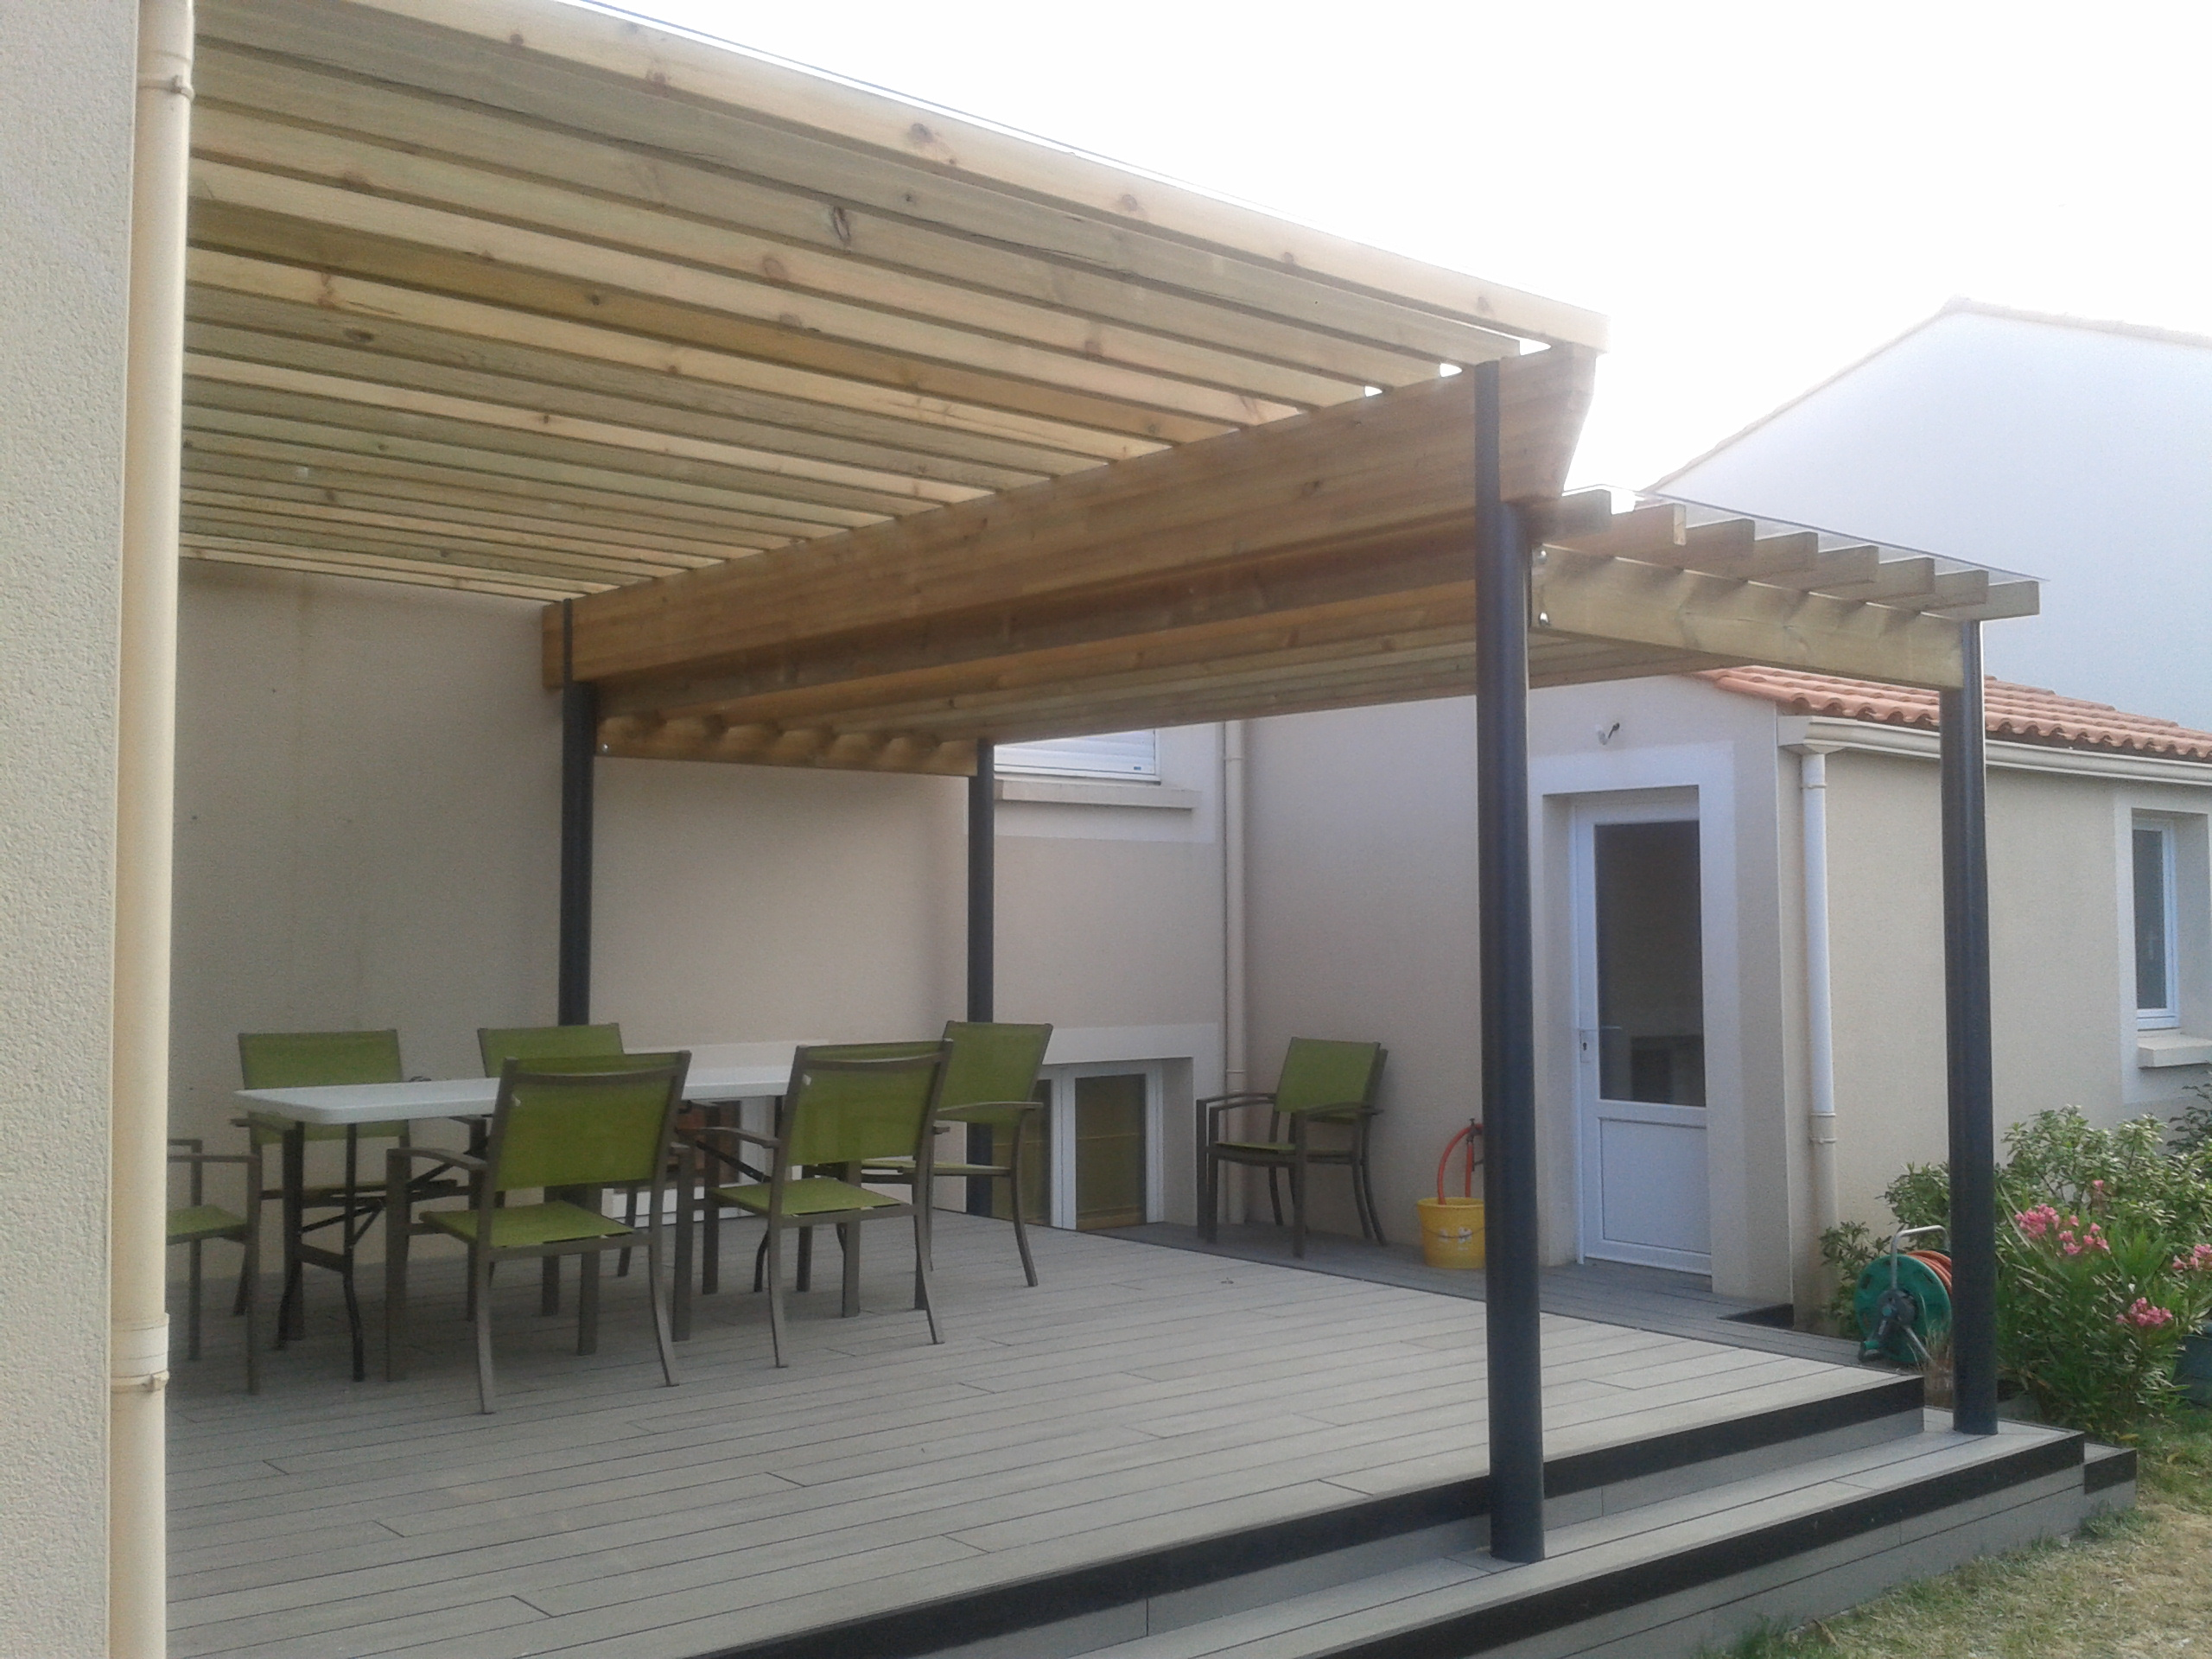 Am nagement ext rieur menuiserie guillet agencement for Terrasse en bois exterieur